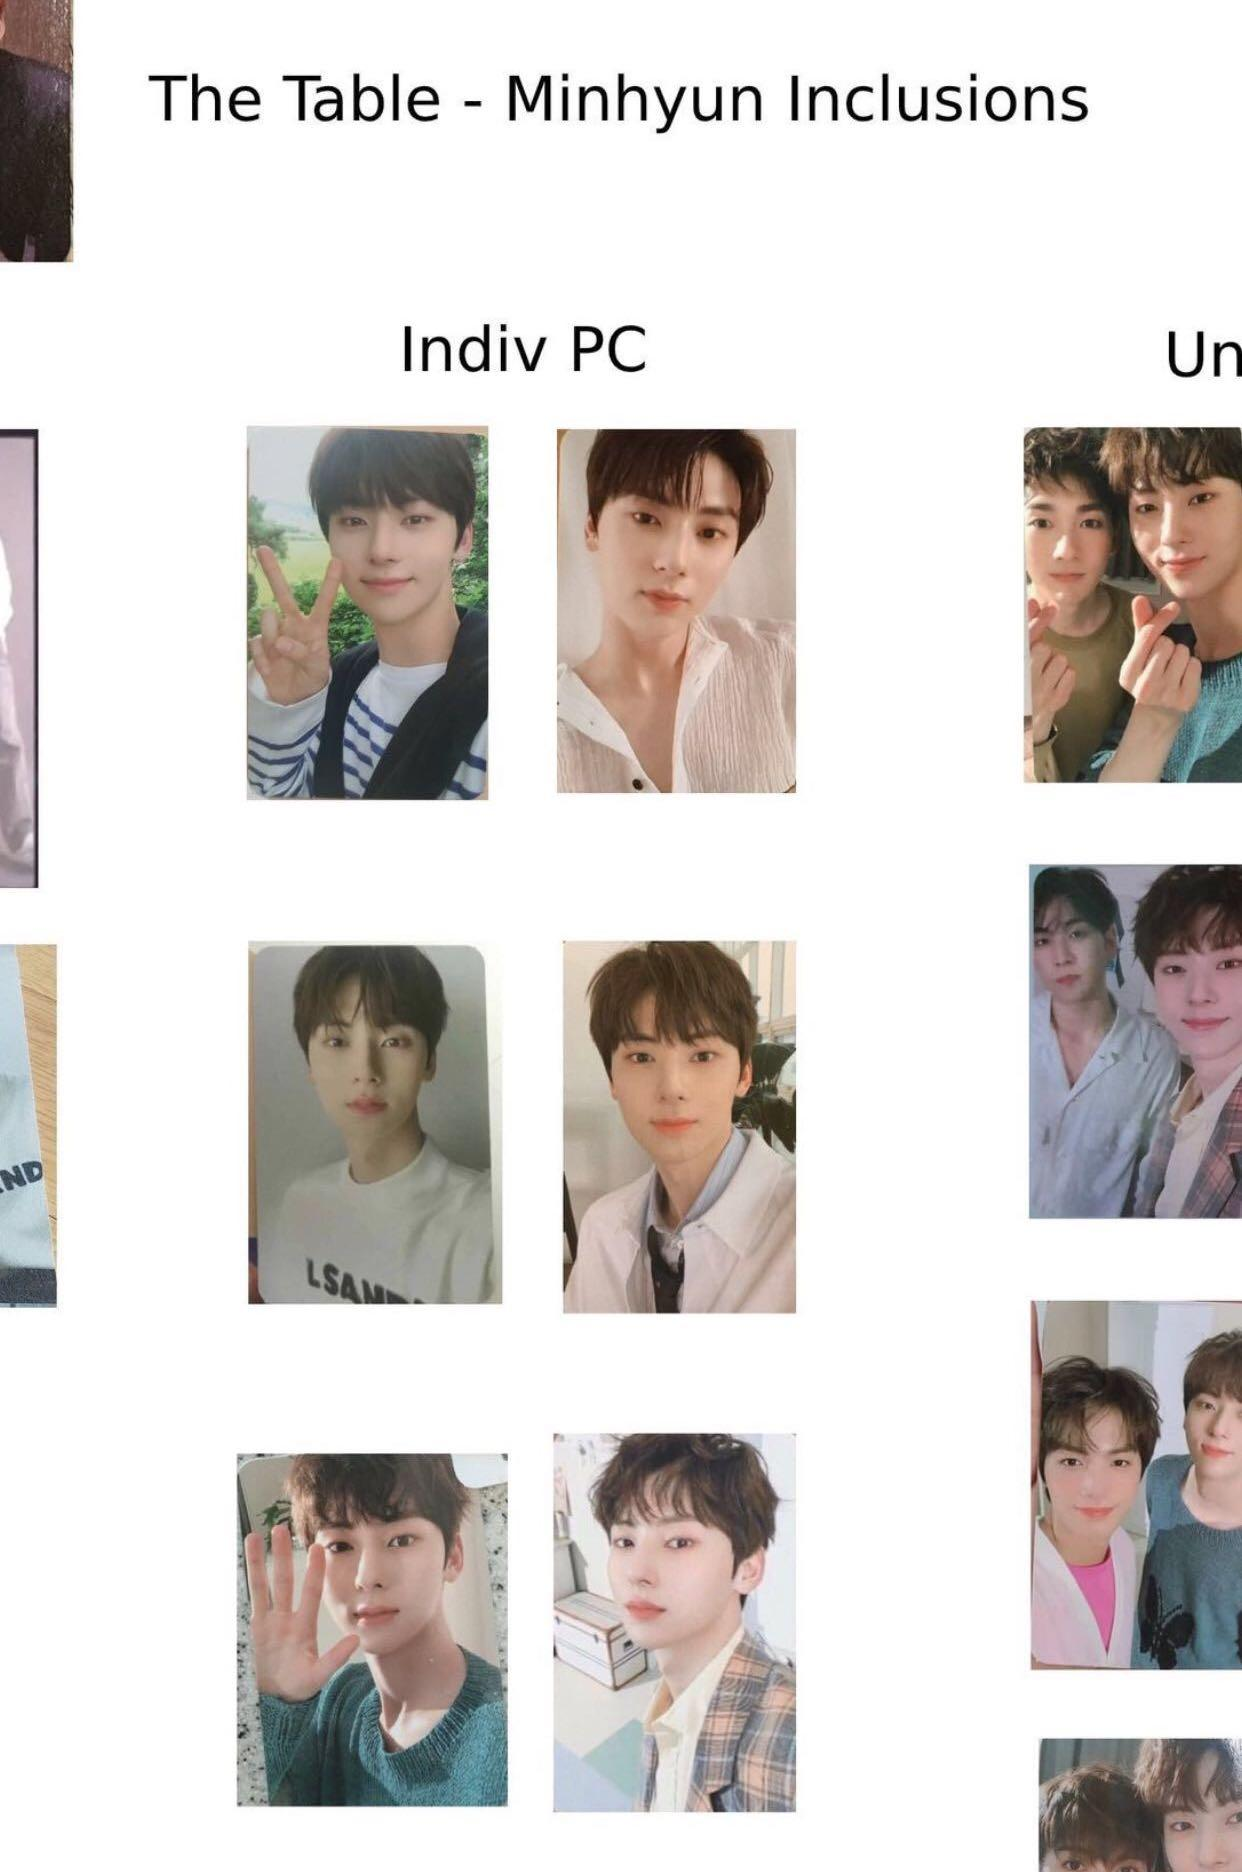 WTB/WANT TO BUY MINHYUN's THE TABLE INDIVIDUAL PCS